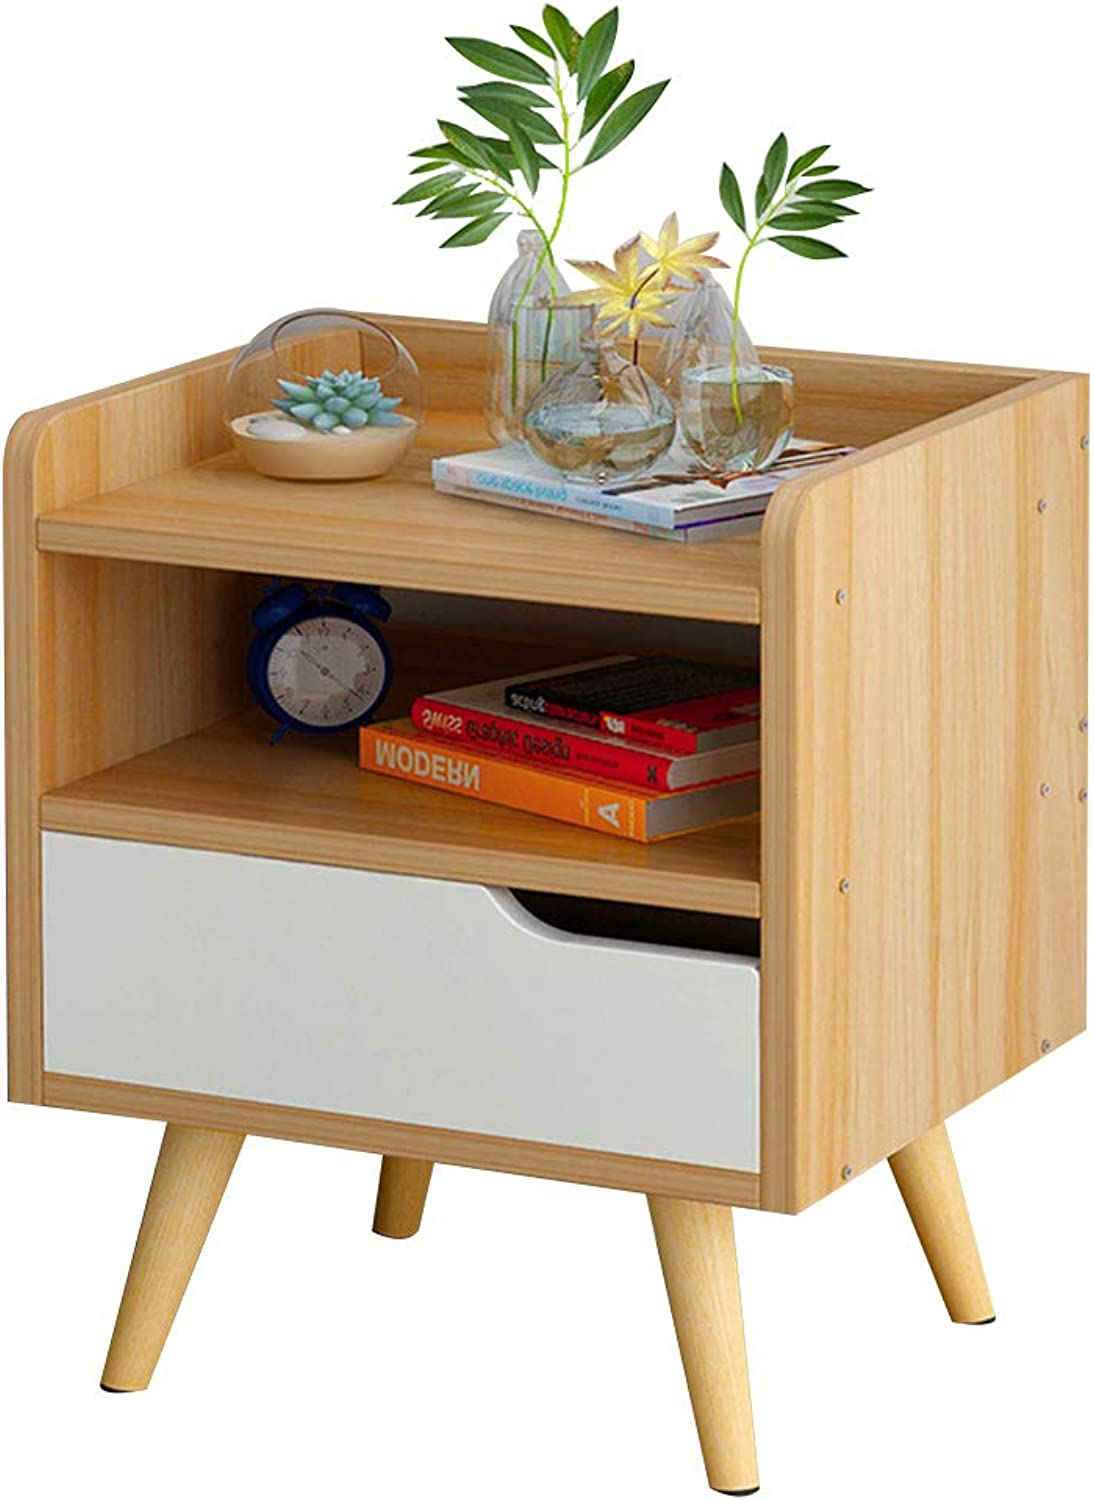 Coffee Table Bedside Cabinet, Solid Wood Cabinet Legs with 1 Drawer Dig Handle Design Diversified Storage Household Living Room Sofa Side 2 Colours (color   Wood color)